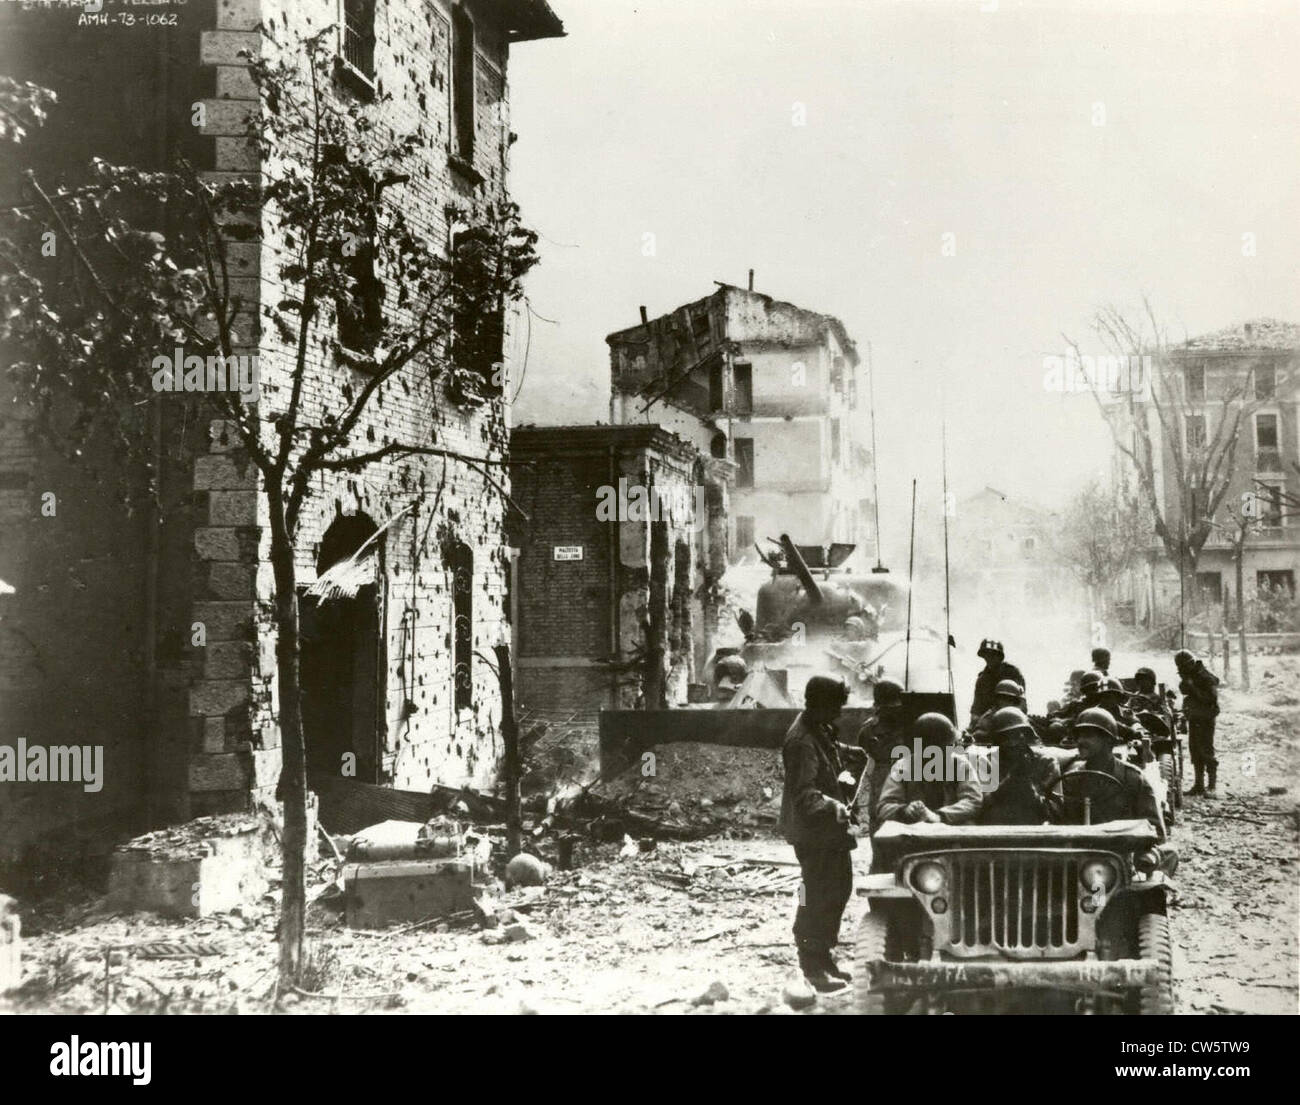 MB model jeep during World War II in Vergato - Stock Image